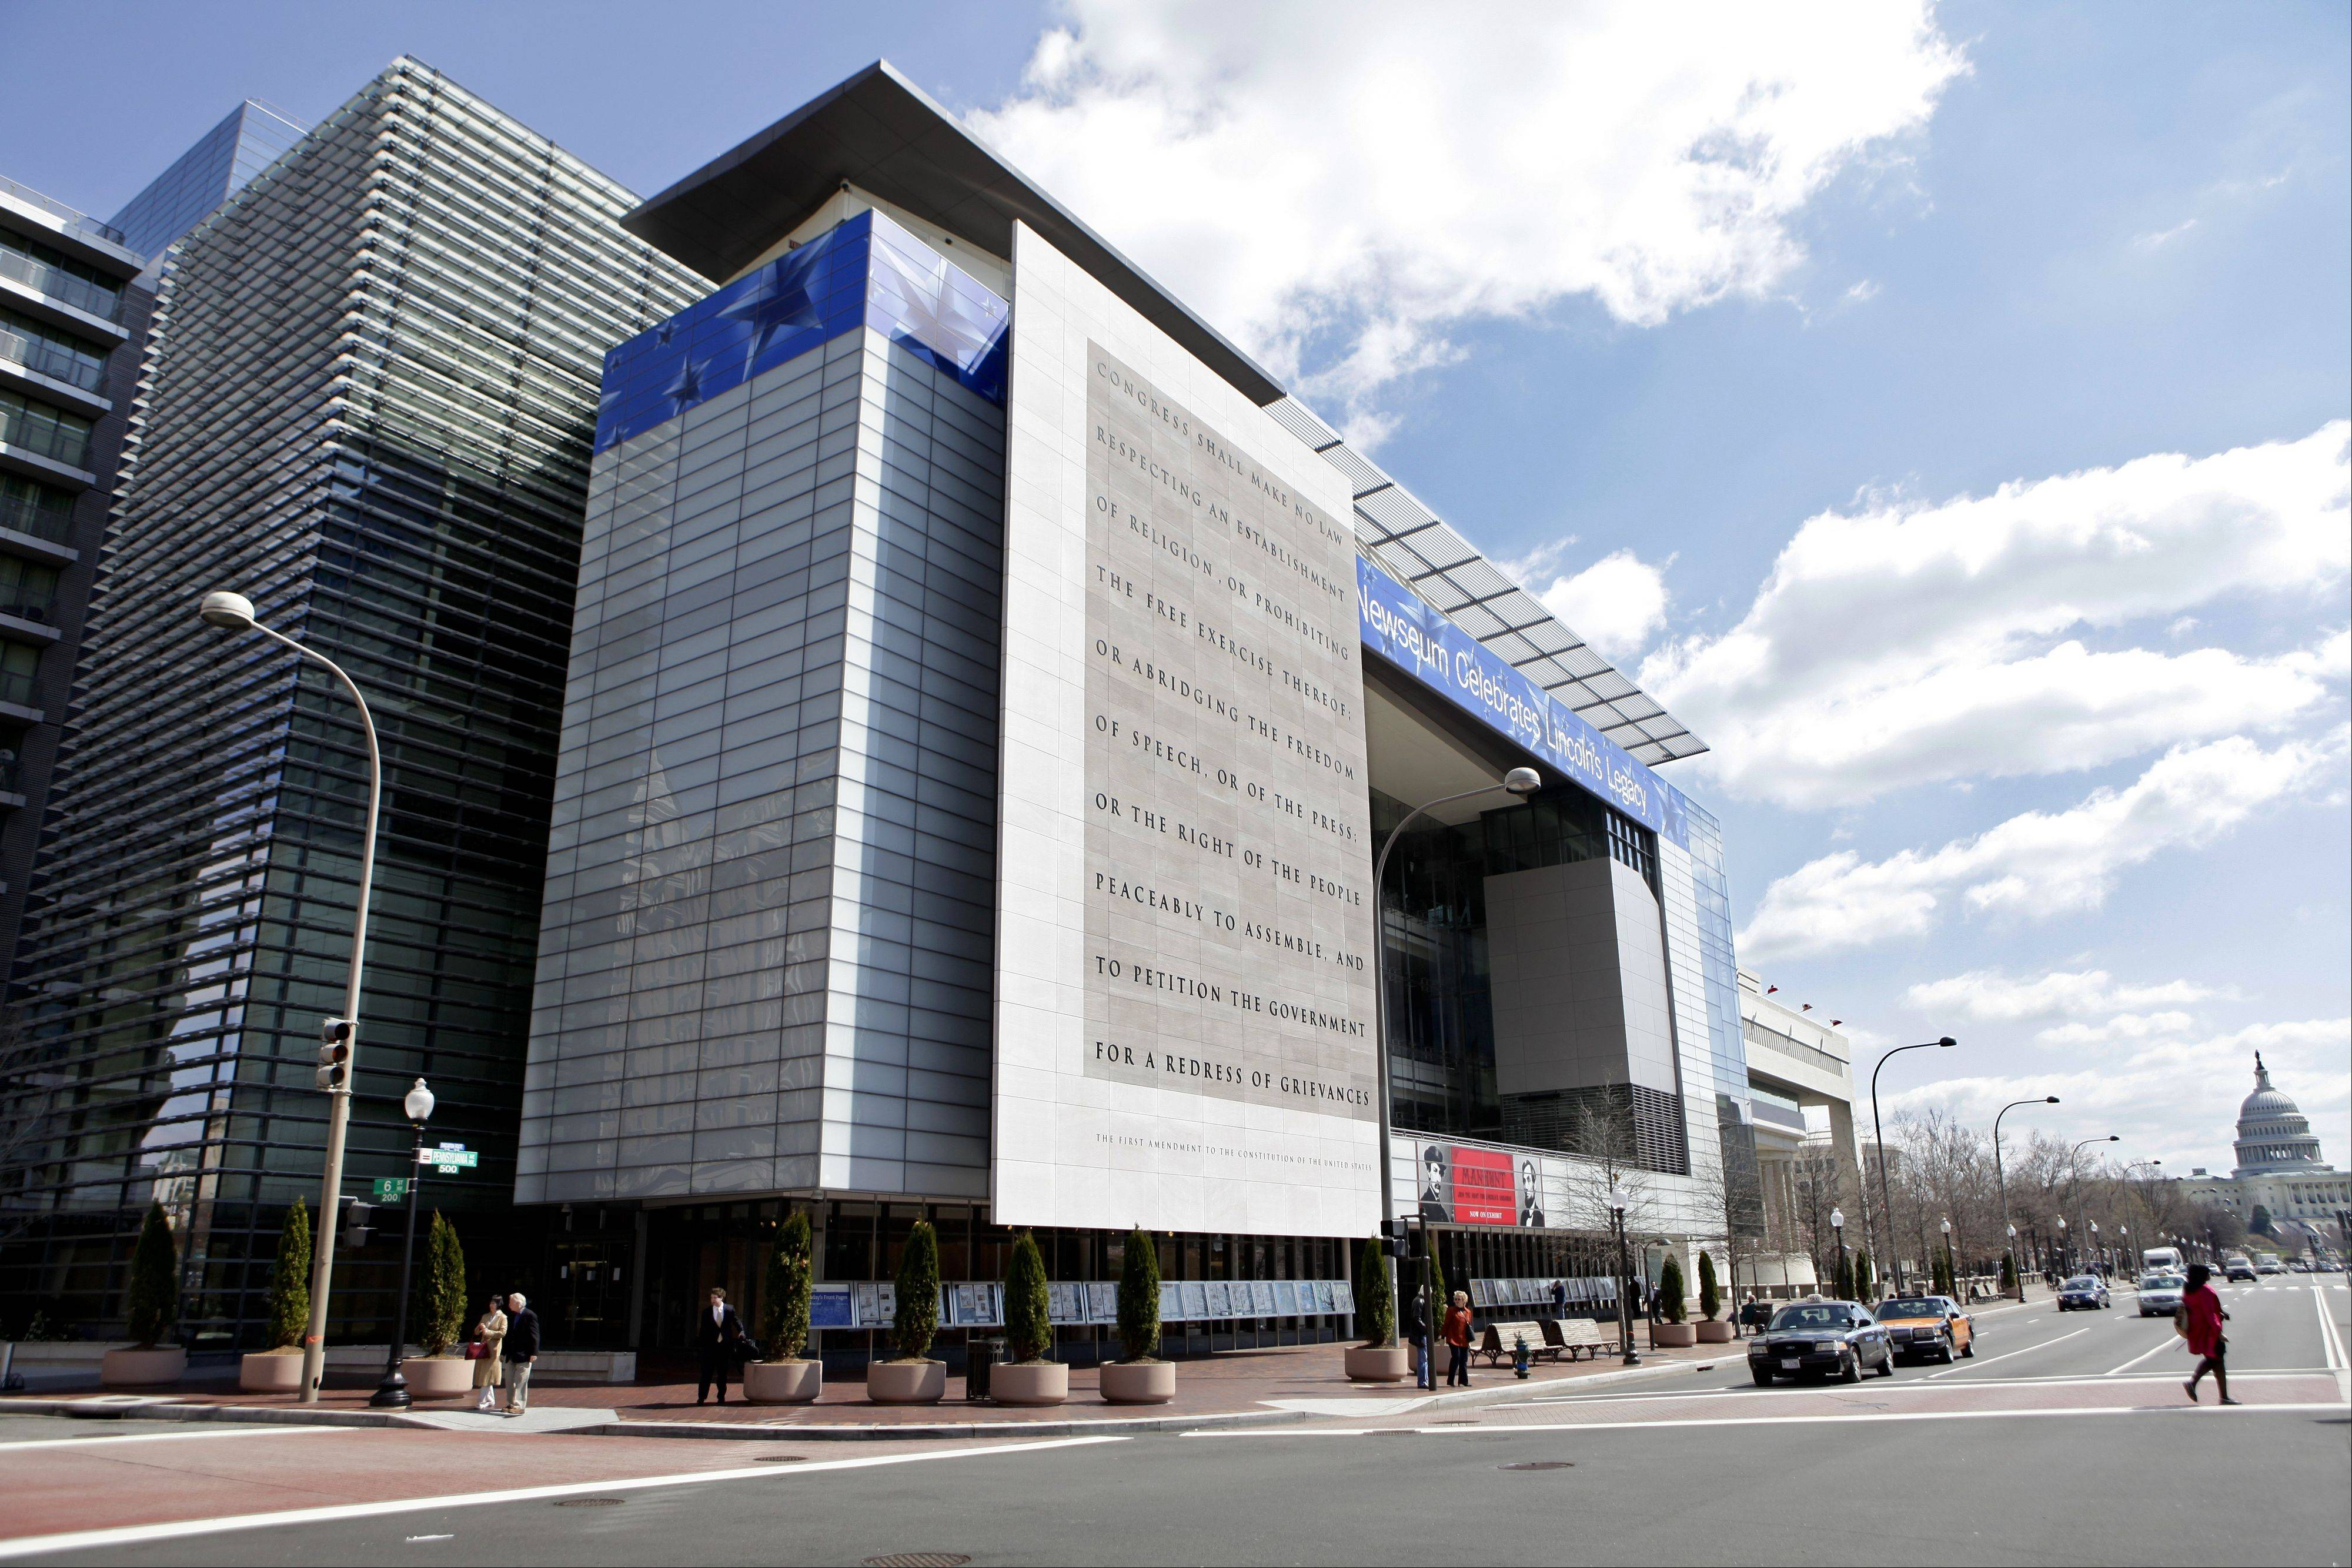 In five years since moving to its new home overlooking the U.S. Capitol, the Newseum has become a major attraction with 4 million people. Yet public financial documents show revenue fell short of expenses by millions of dollars in 2009, 2010 and 2011.